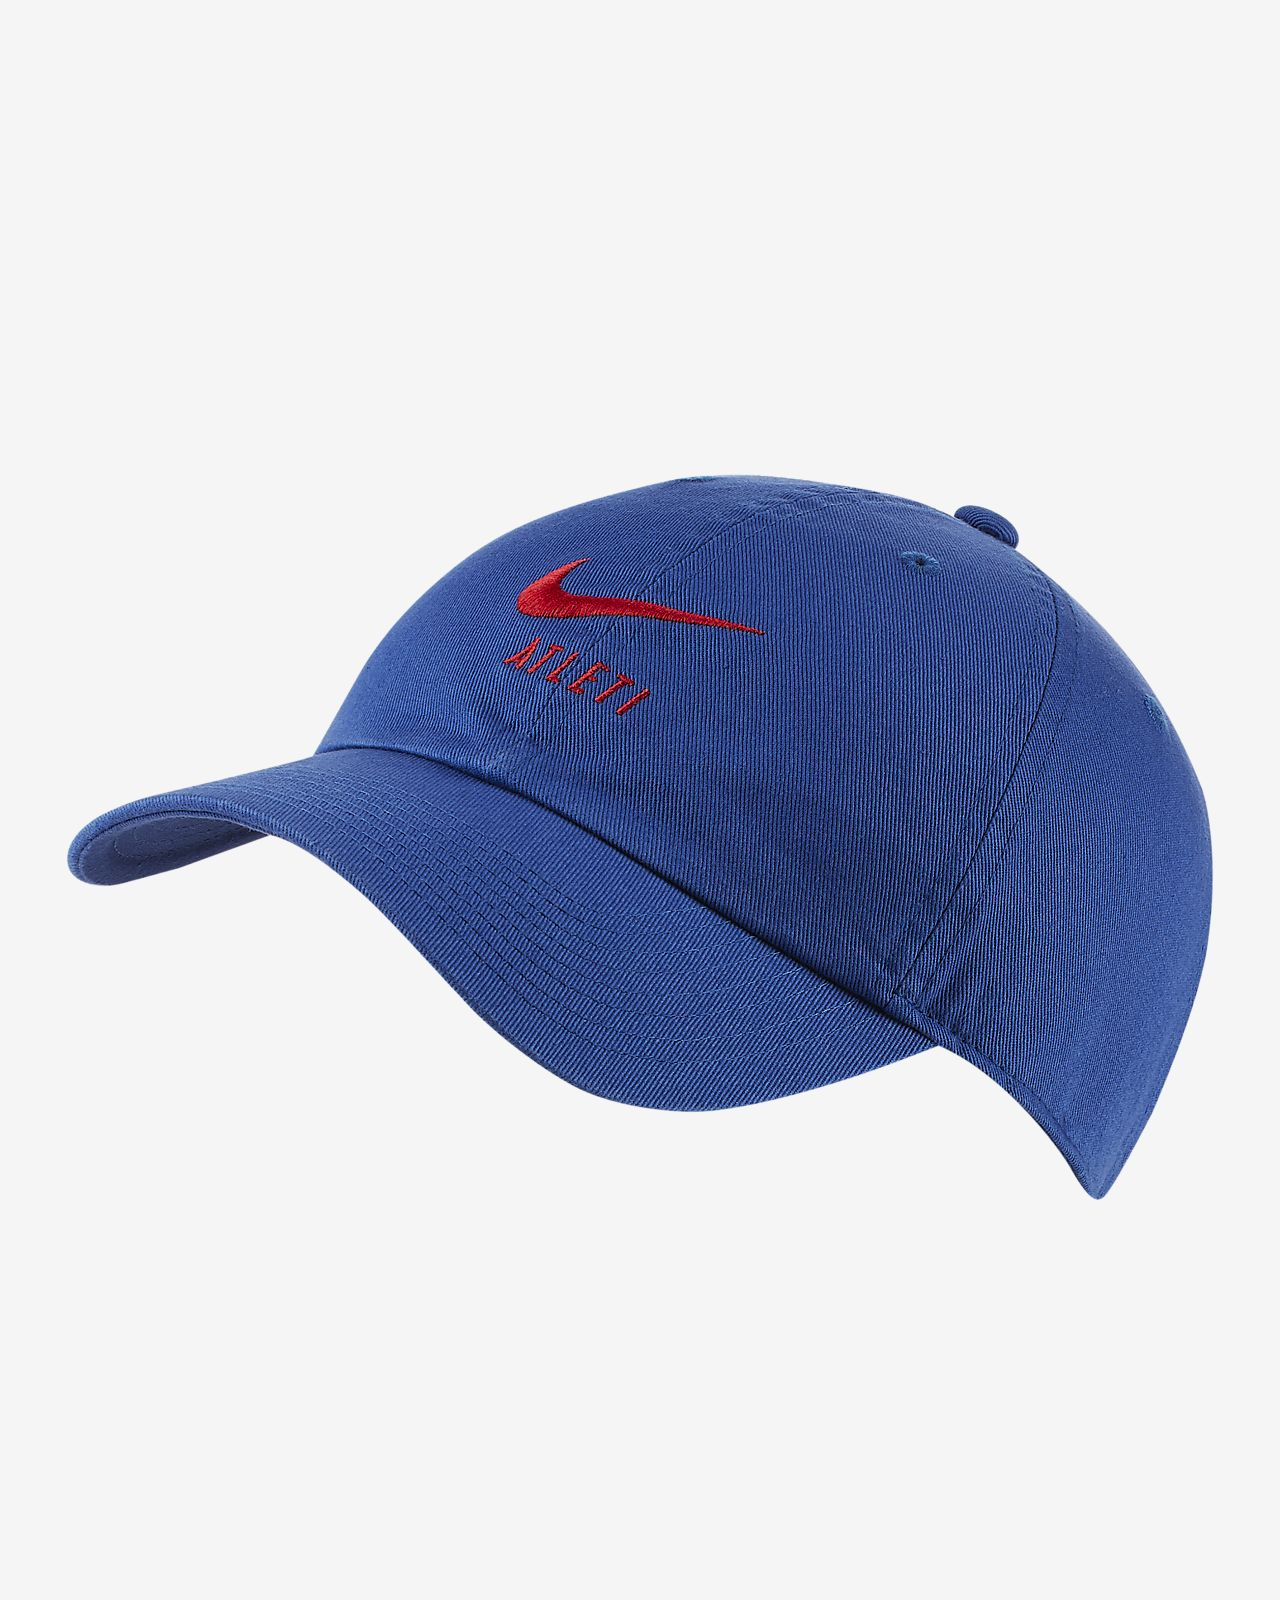 Atlético de Madrid Heritage86 Adjustable Hat